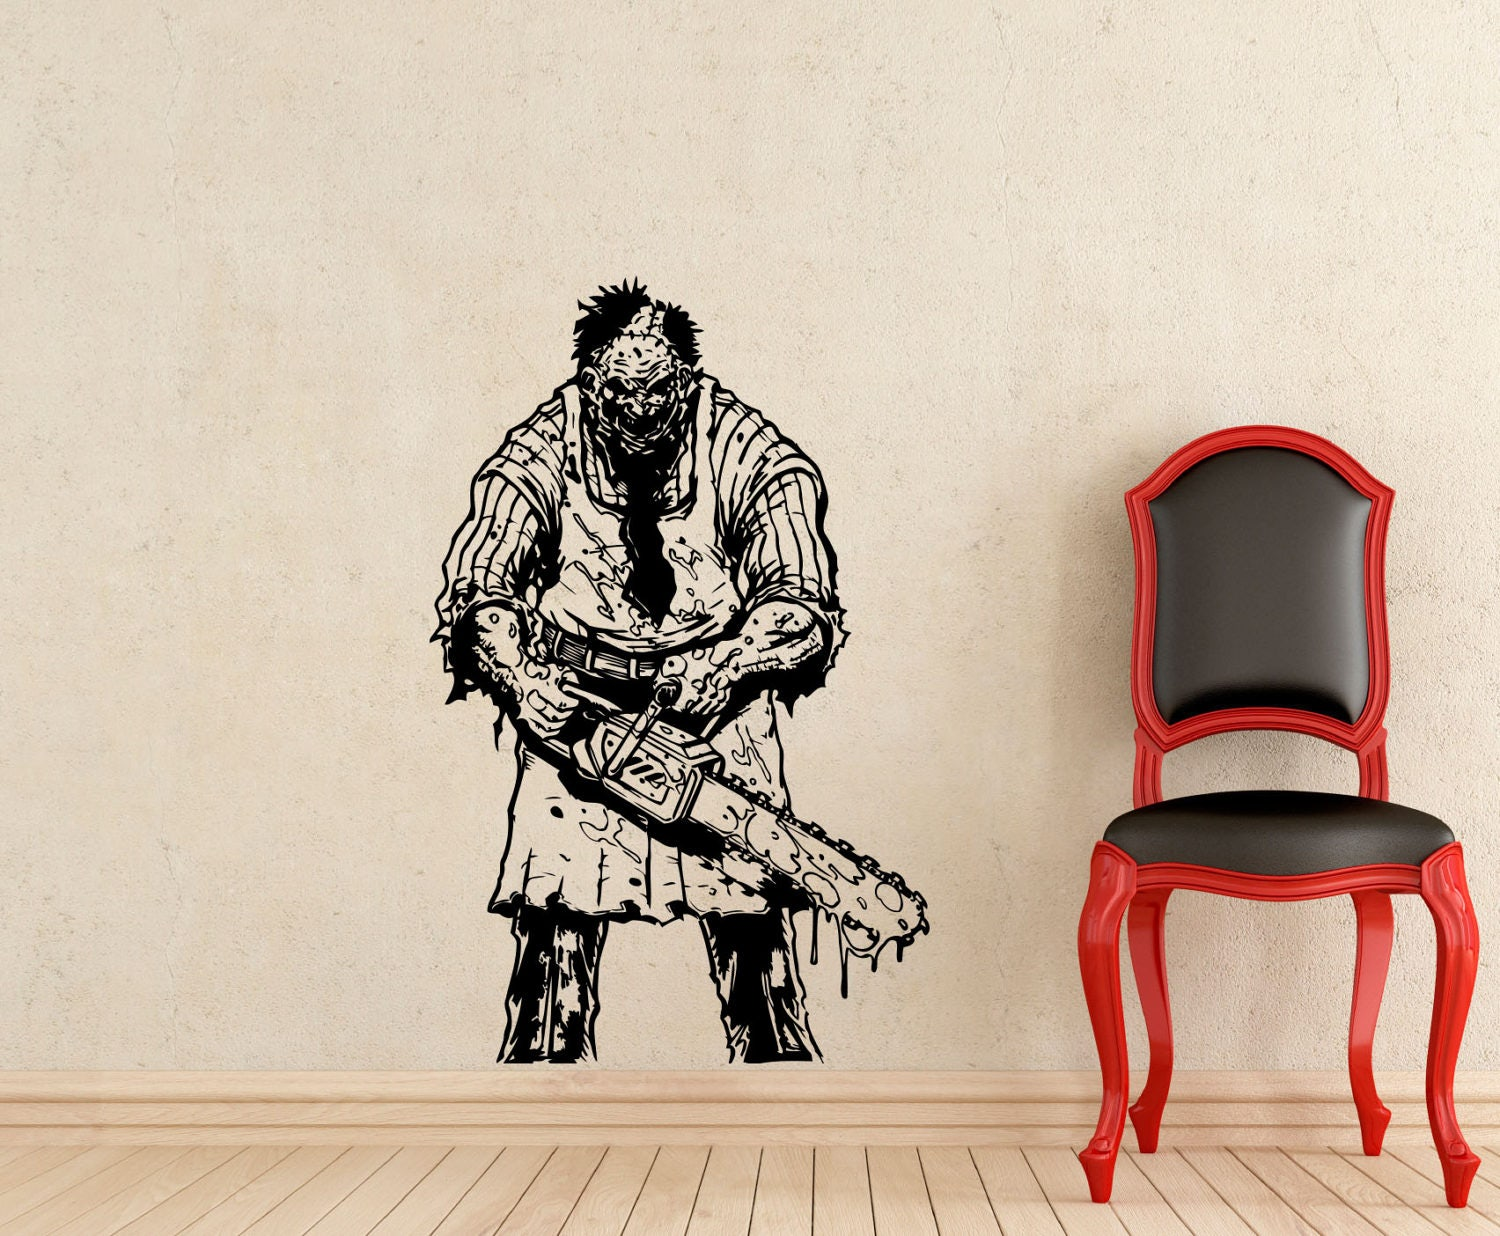 leatherface wall decal texas chainsaw massacre horror scary zoom